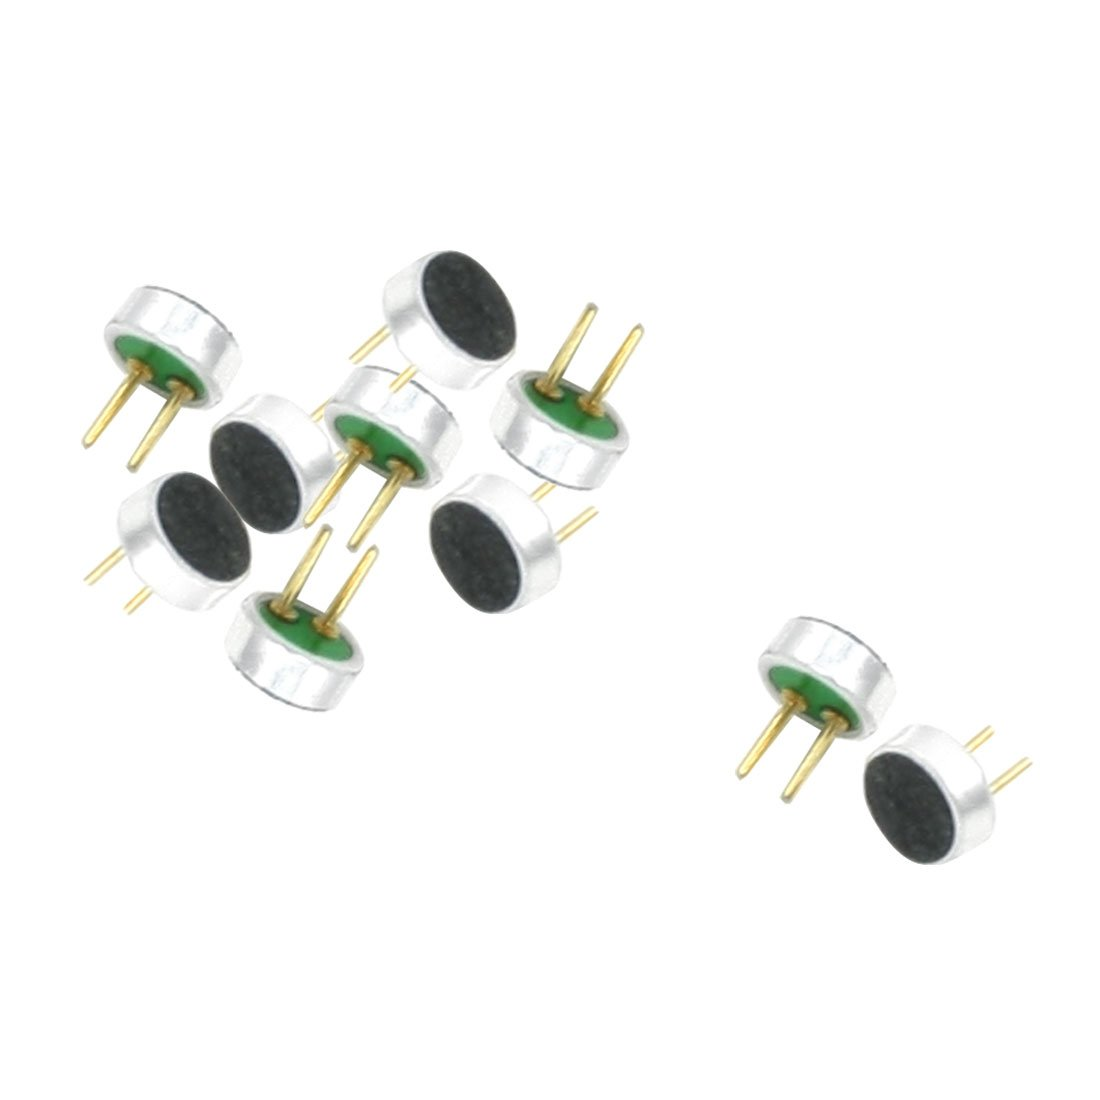 10pcs 2P Electret Condenser MIC Capsule 4mm x 2mm for PC Phone MP3 MP4